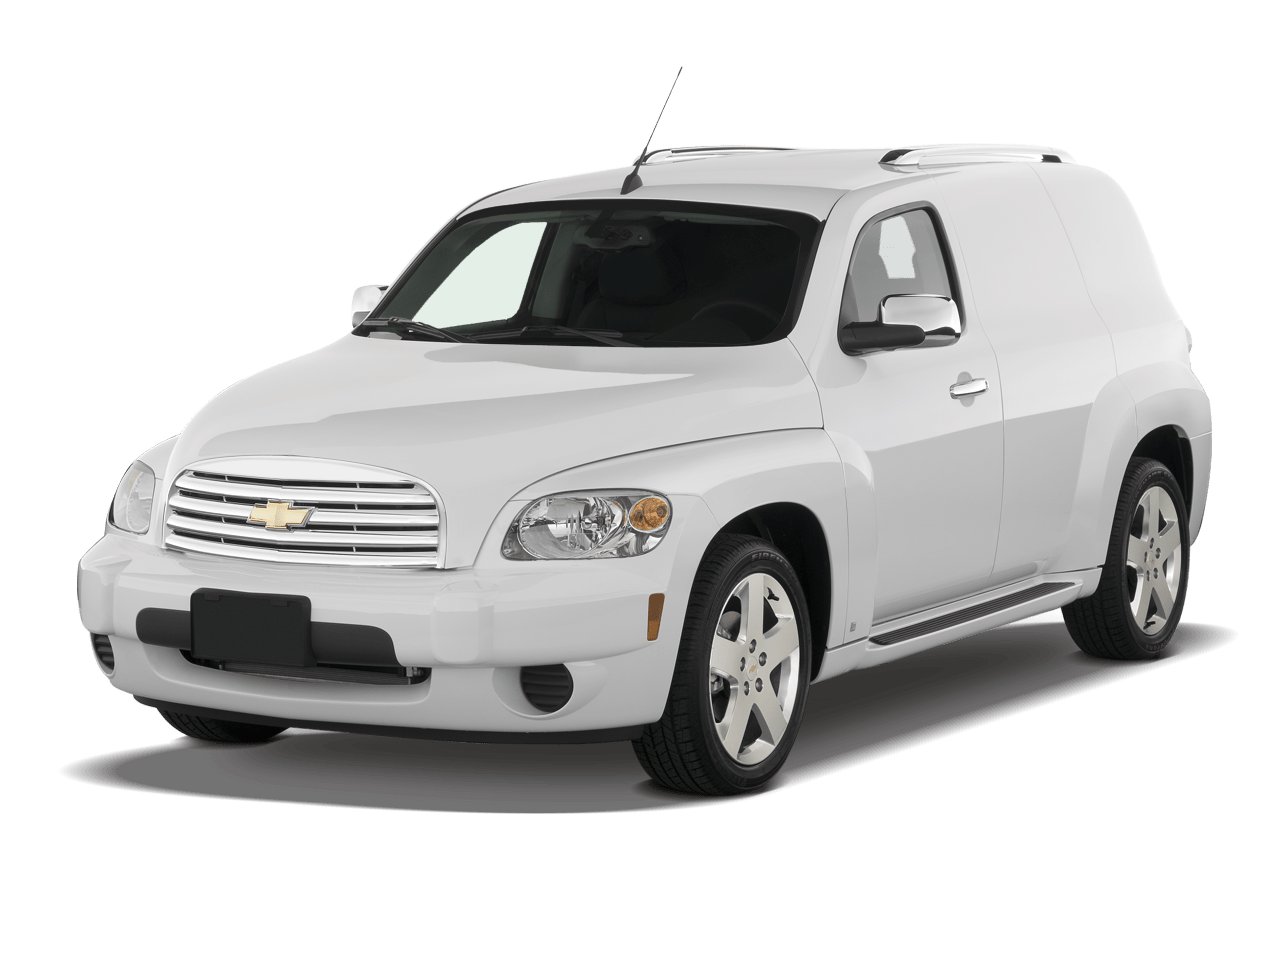 small resolution of 2008 chevrolet hhr reviews research hhr prices specs diagram as well 2011 chevrolet hhr ls in addition honda civic type r